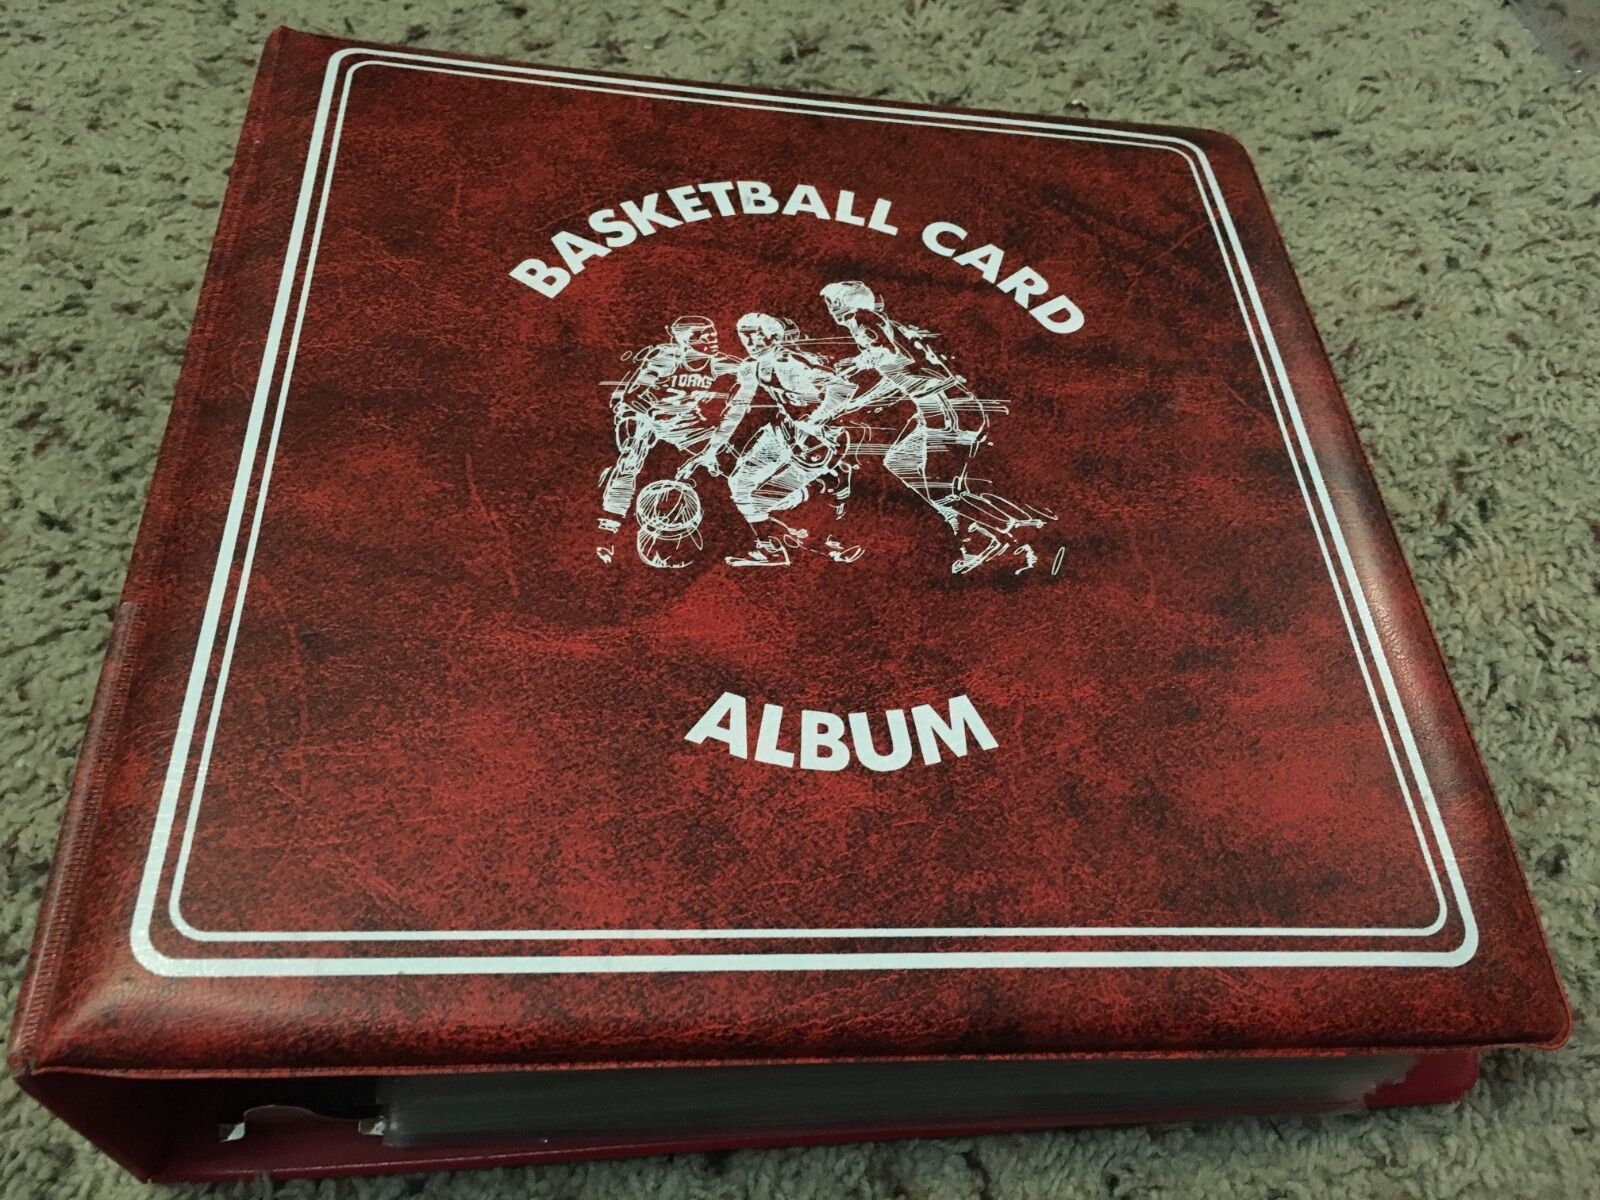 1/1  HOF  Auto Patch Refractor RC LOT   Babe Ruth   Emmitt Smith  Michael Jordan